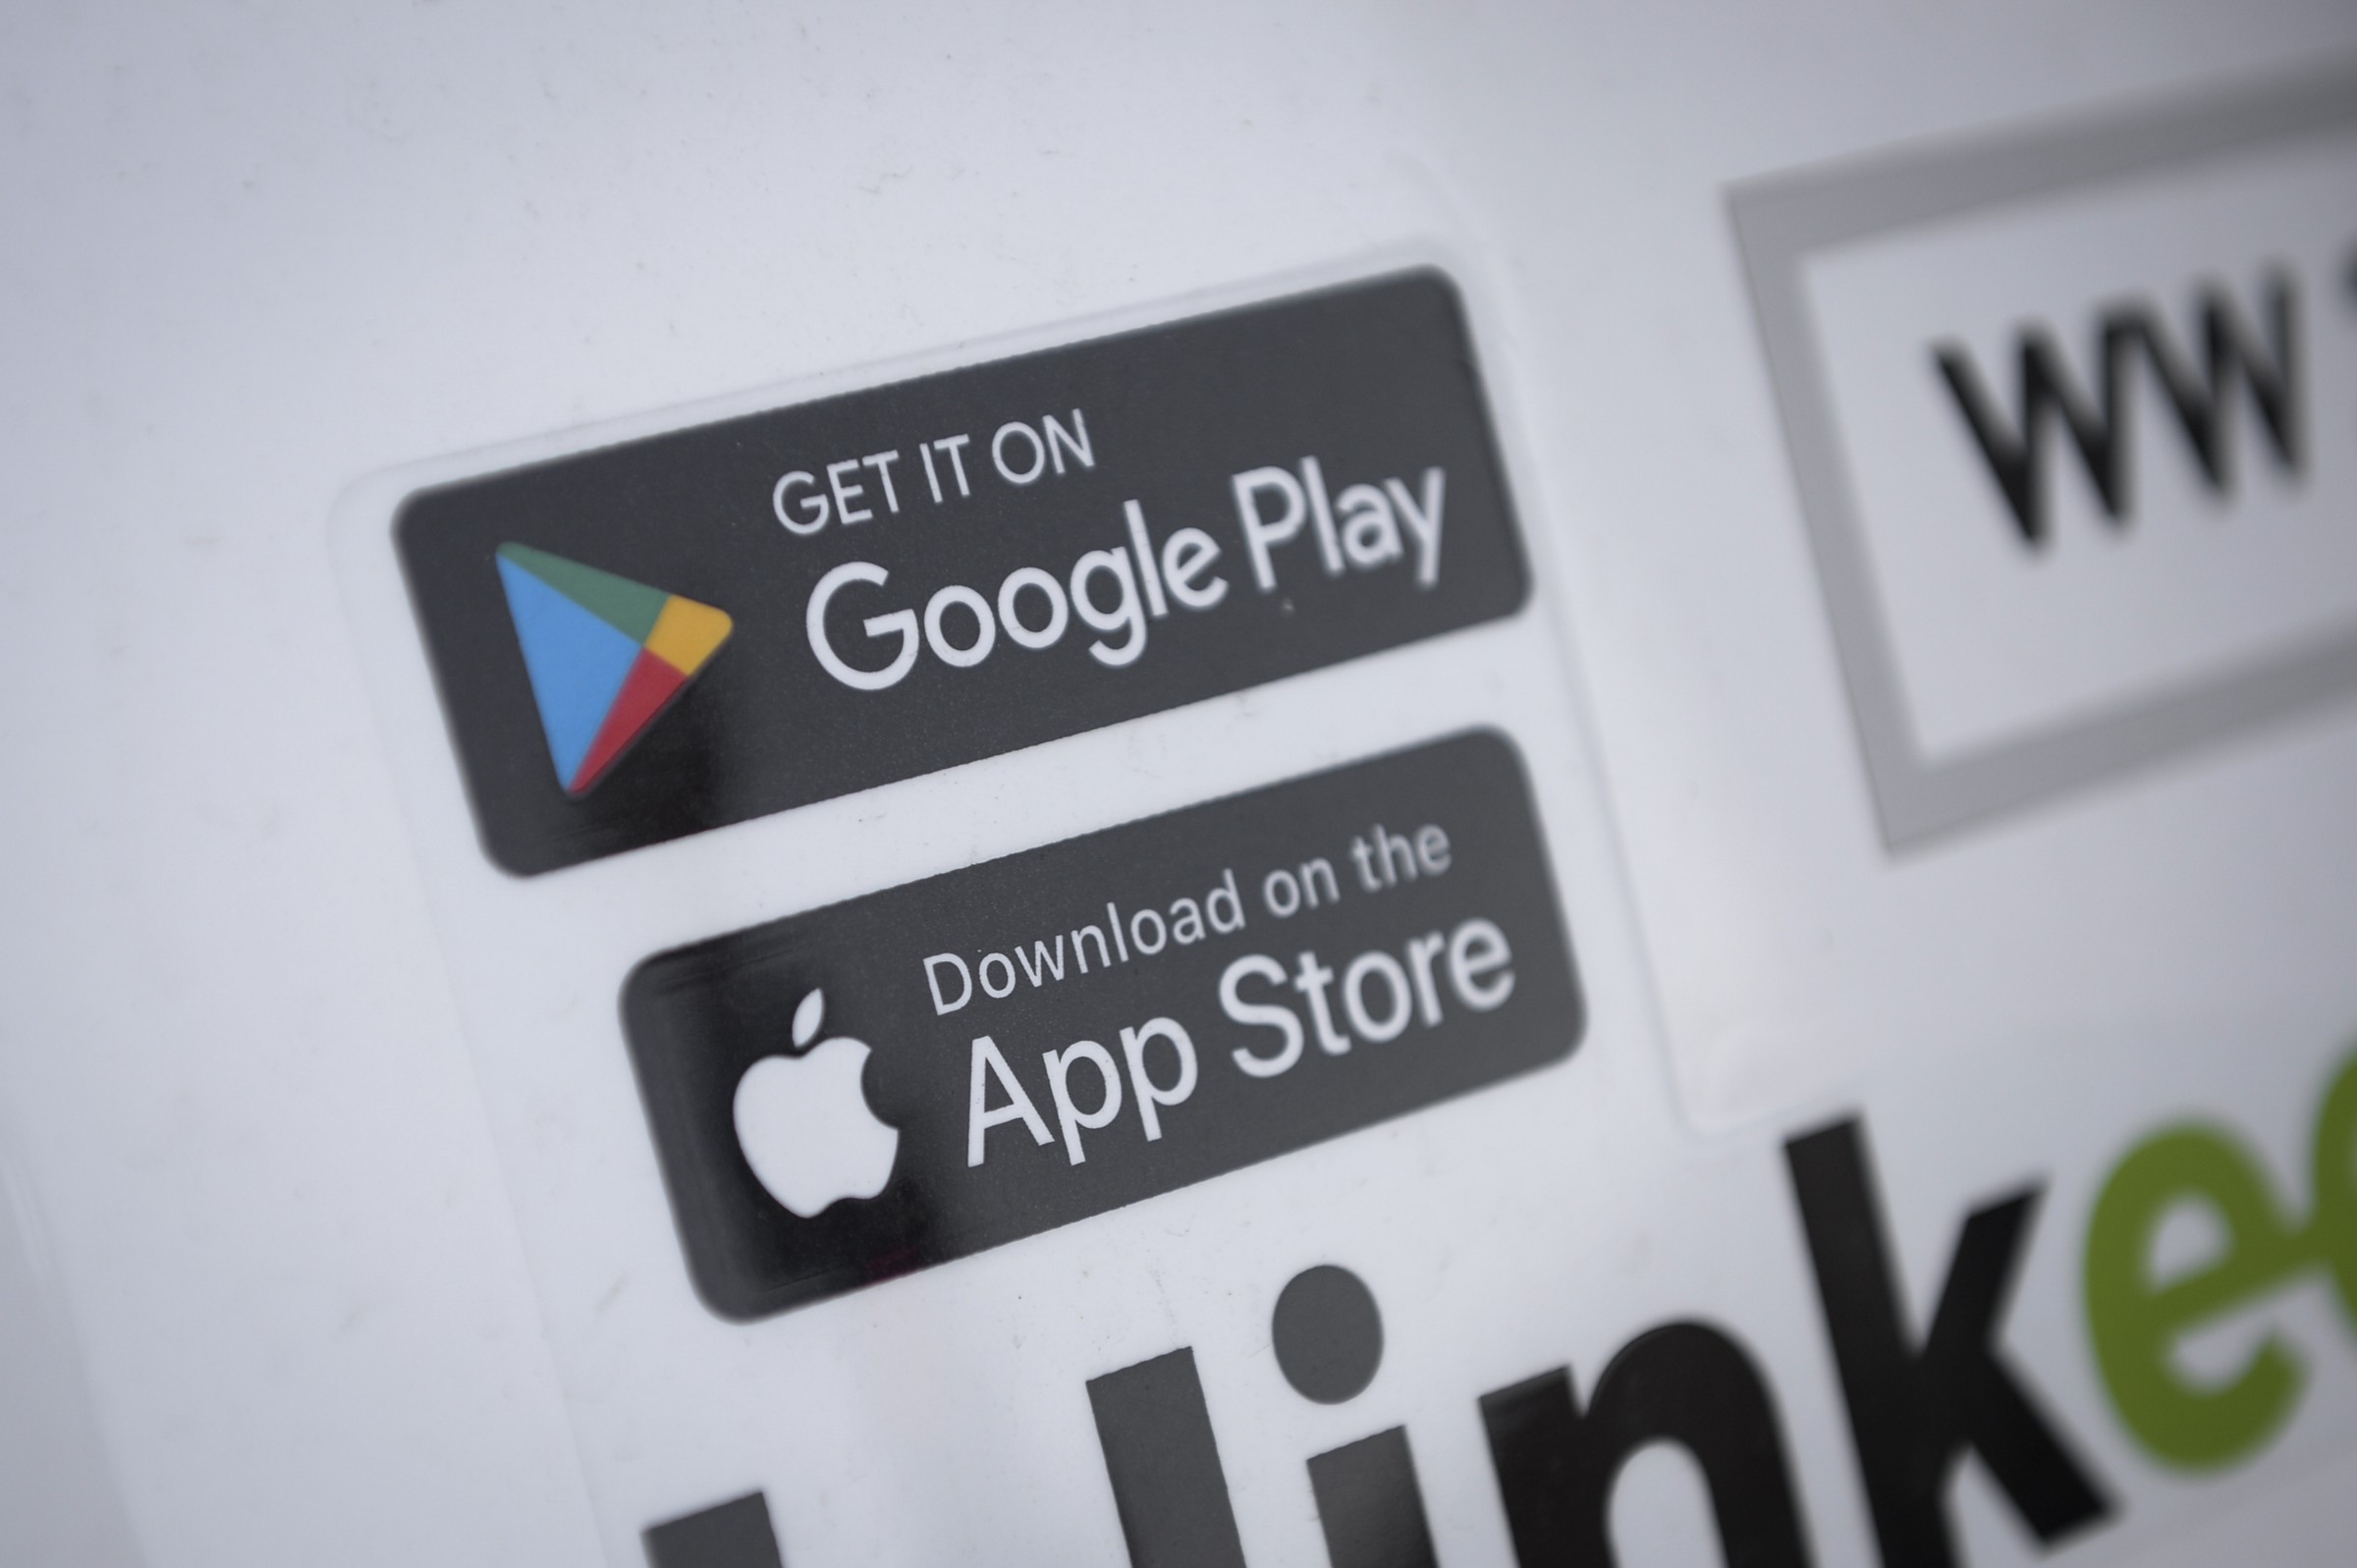 The End of App Stores Is Rapidly Approaching